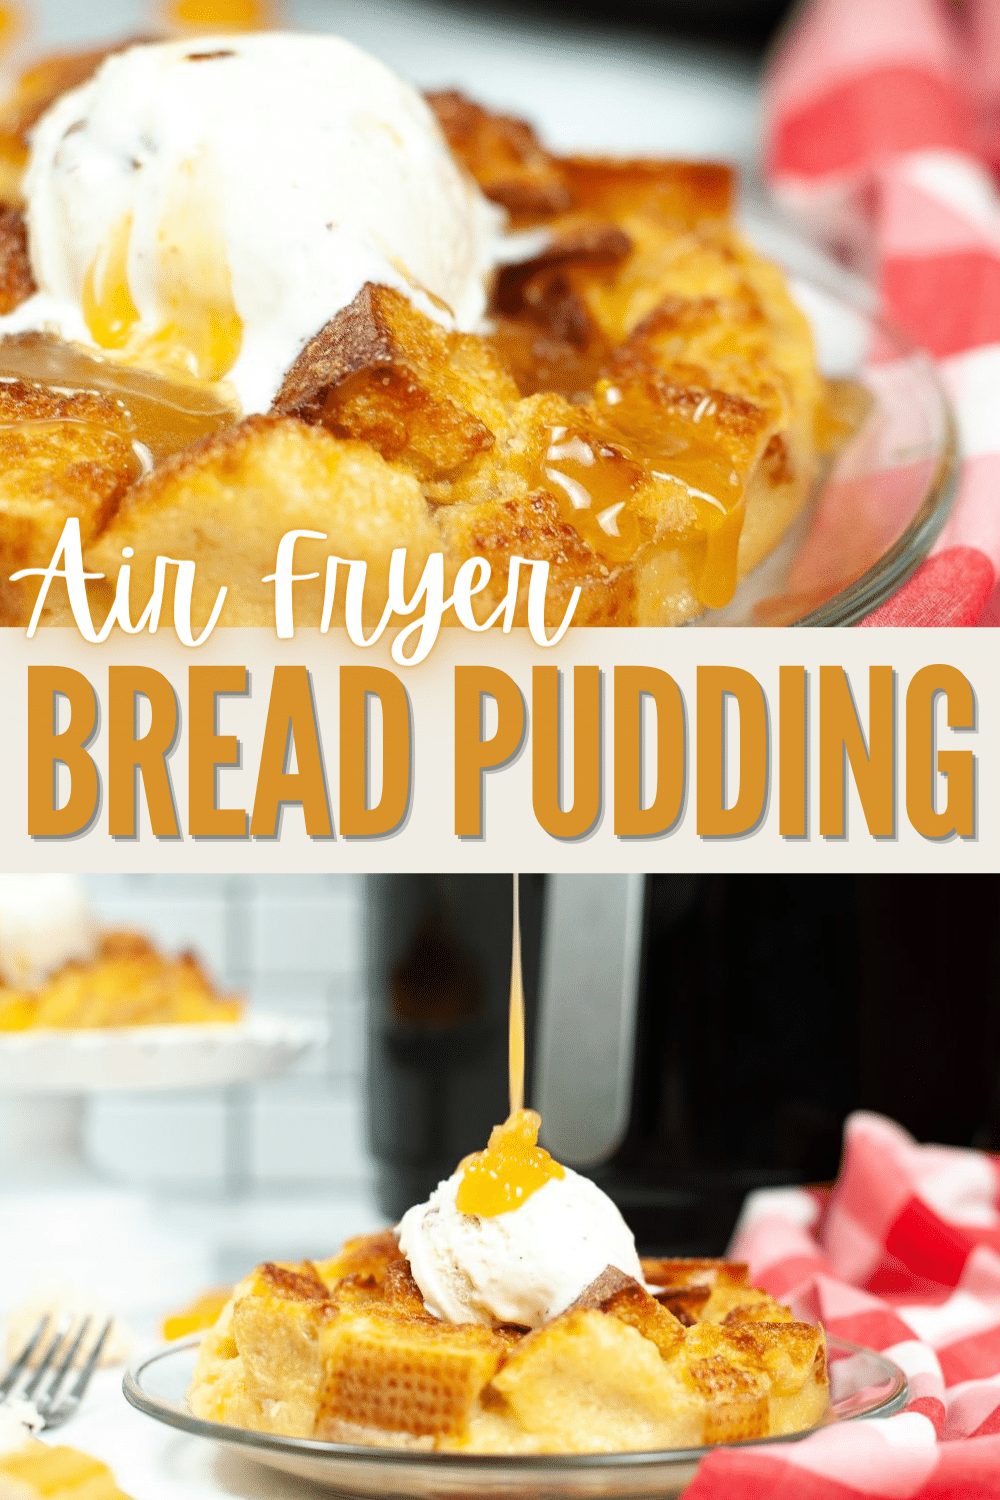 Air Fryer Bread Pudding is going to be your new favorite treat. When it comes to a fast and easy dessert, homemade bread pudding is the best. #airfryer #breadpudding #dessert #homemade #recipe via @wondermomwannab